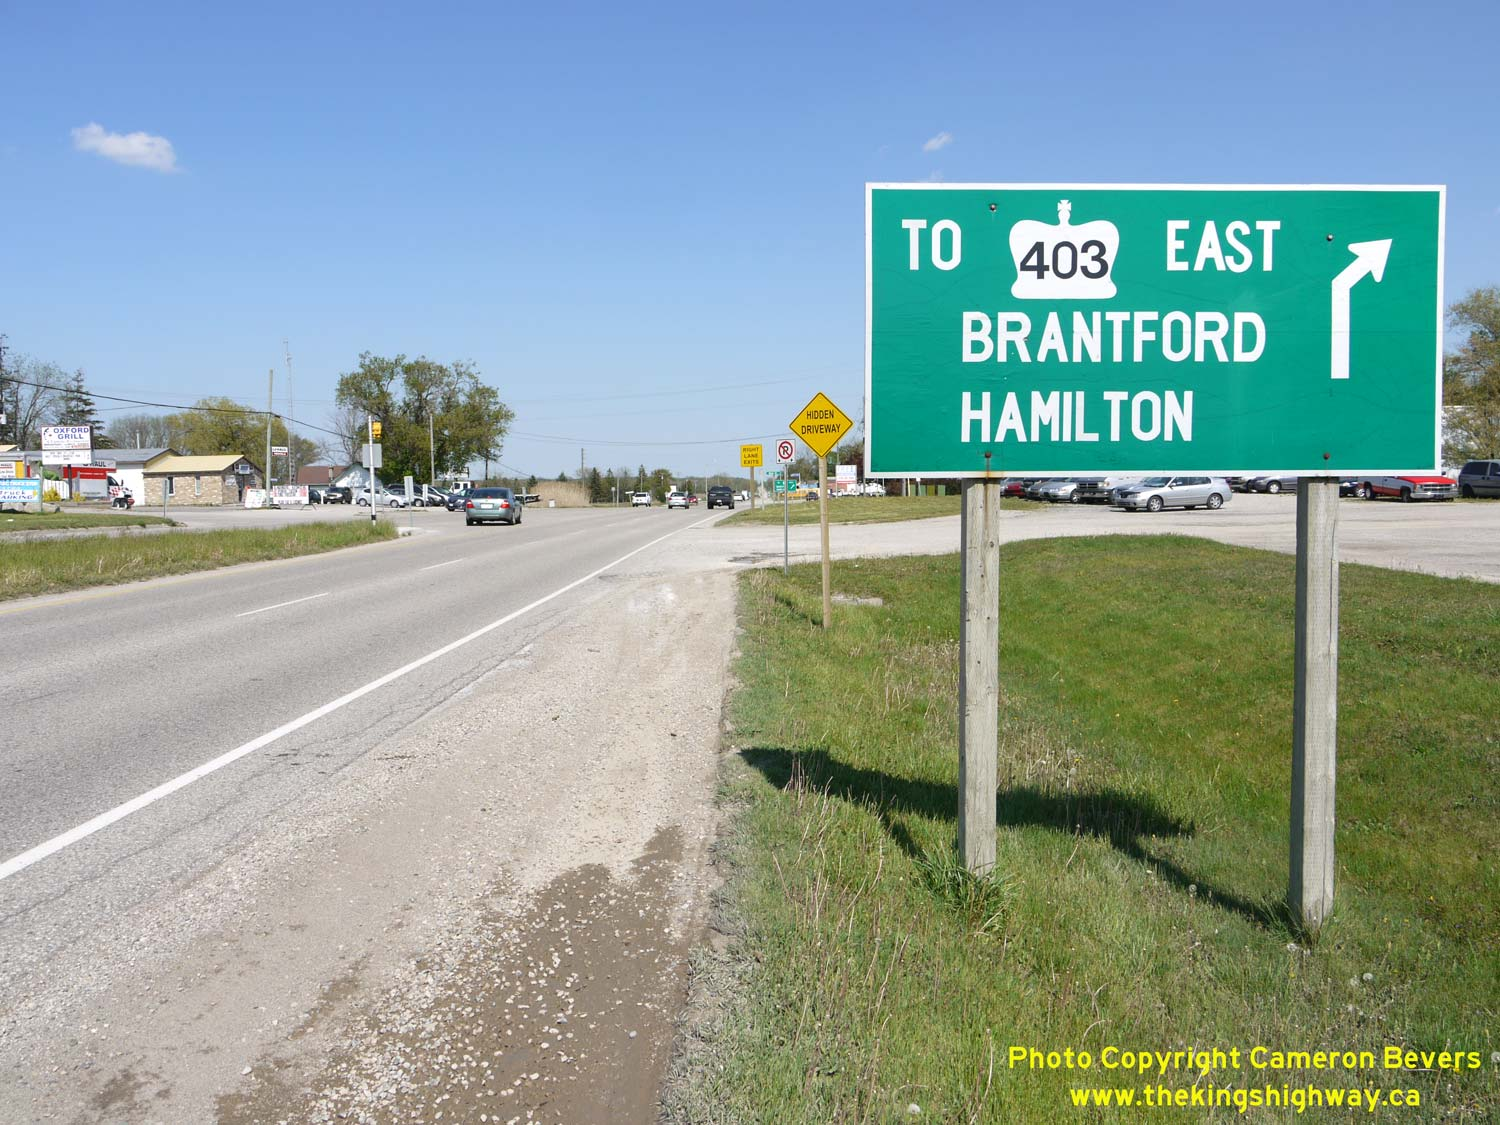 Ontario Highway 2 Photographs - Page 8 - History of Ontario's Kings